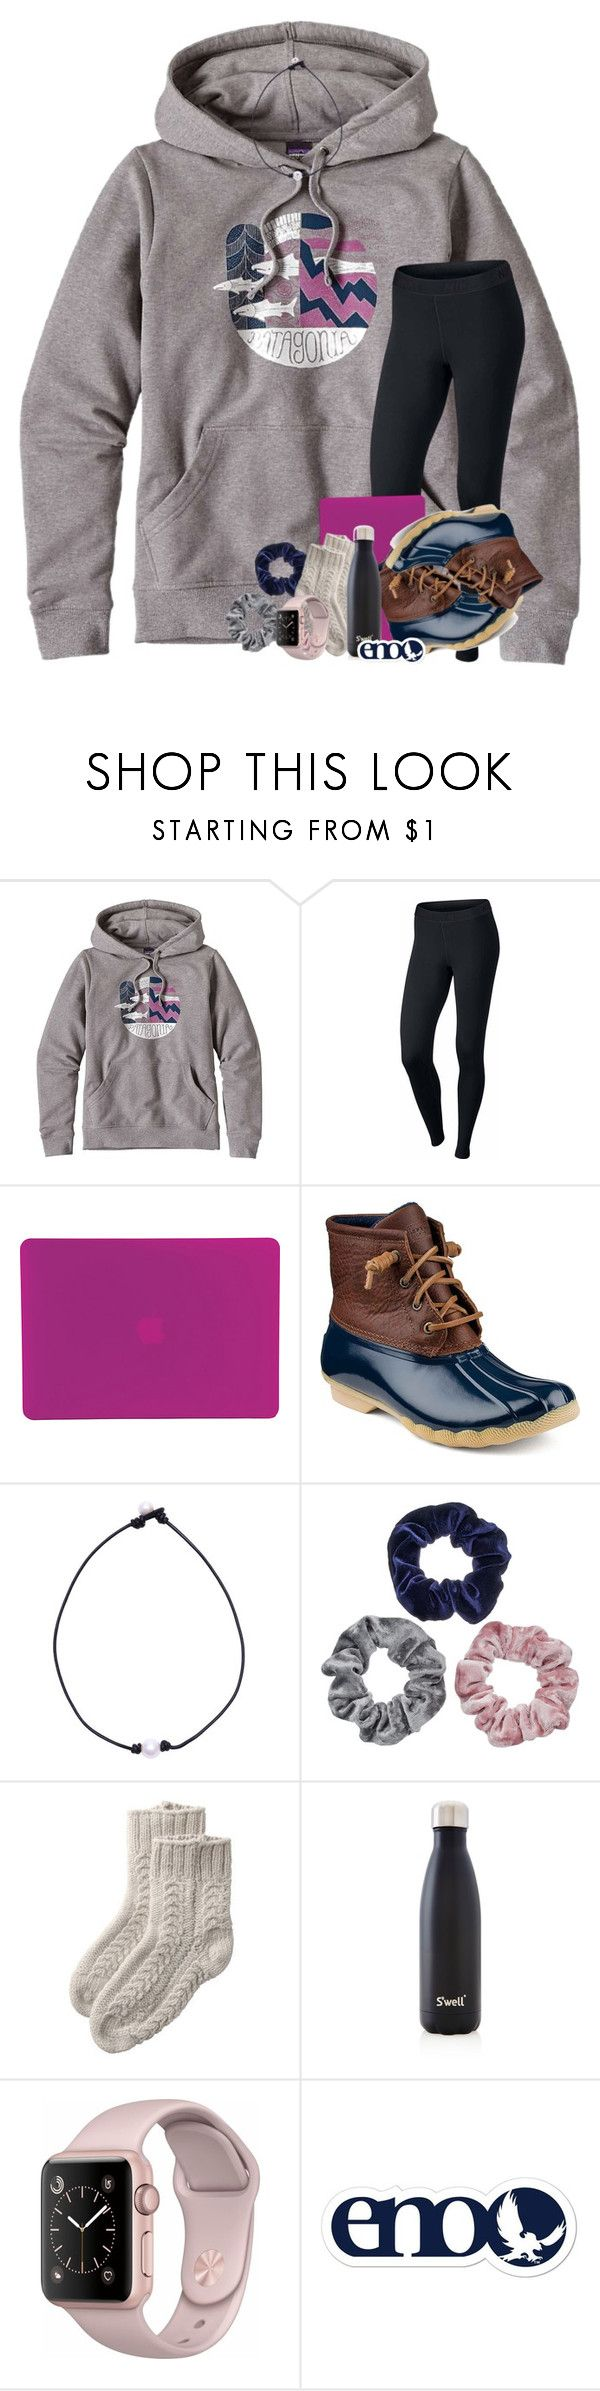 """11/18/17"" by jeh-shev ❤ liked on Polyvore featuring Patagonia, NIKE, Tucano, Sperry, Mudd and S'well"